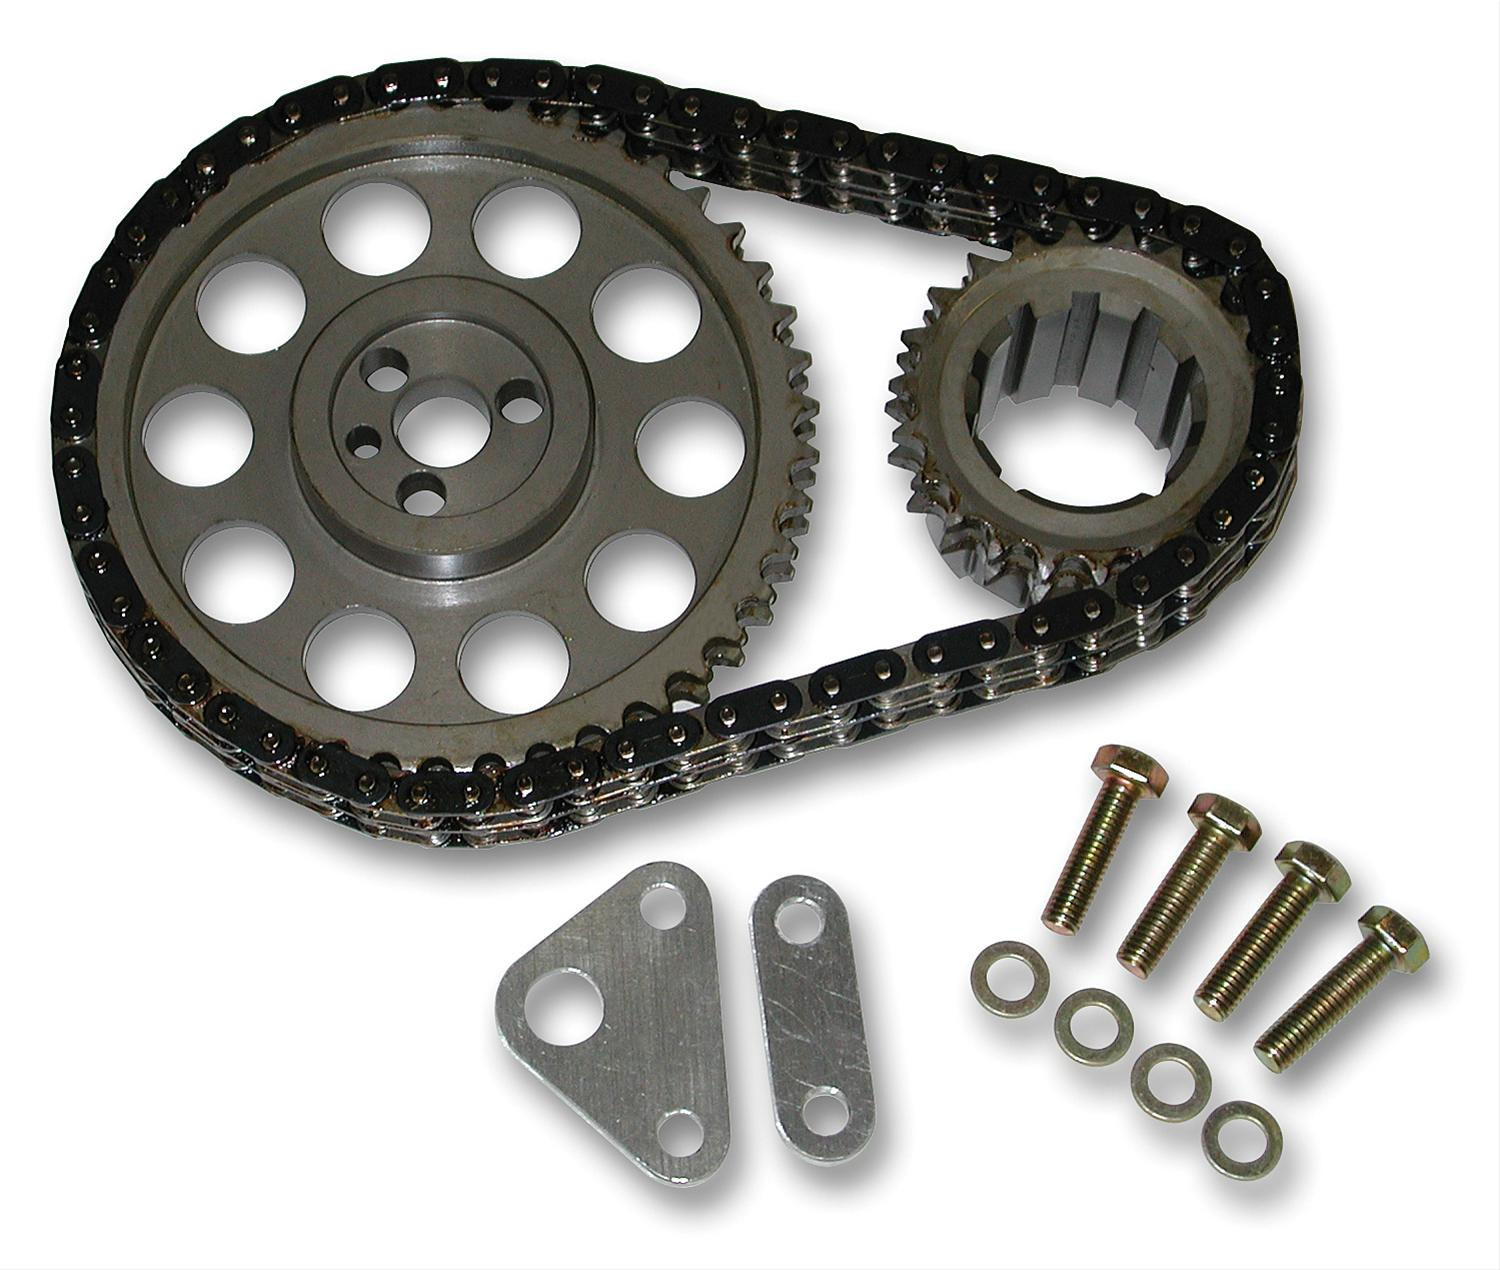 Chevy Ls6 Camshaft: SLP Performance LS1/LS6 Double-Roller Timing Chain Set